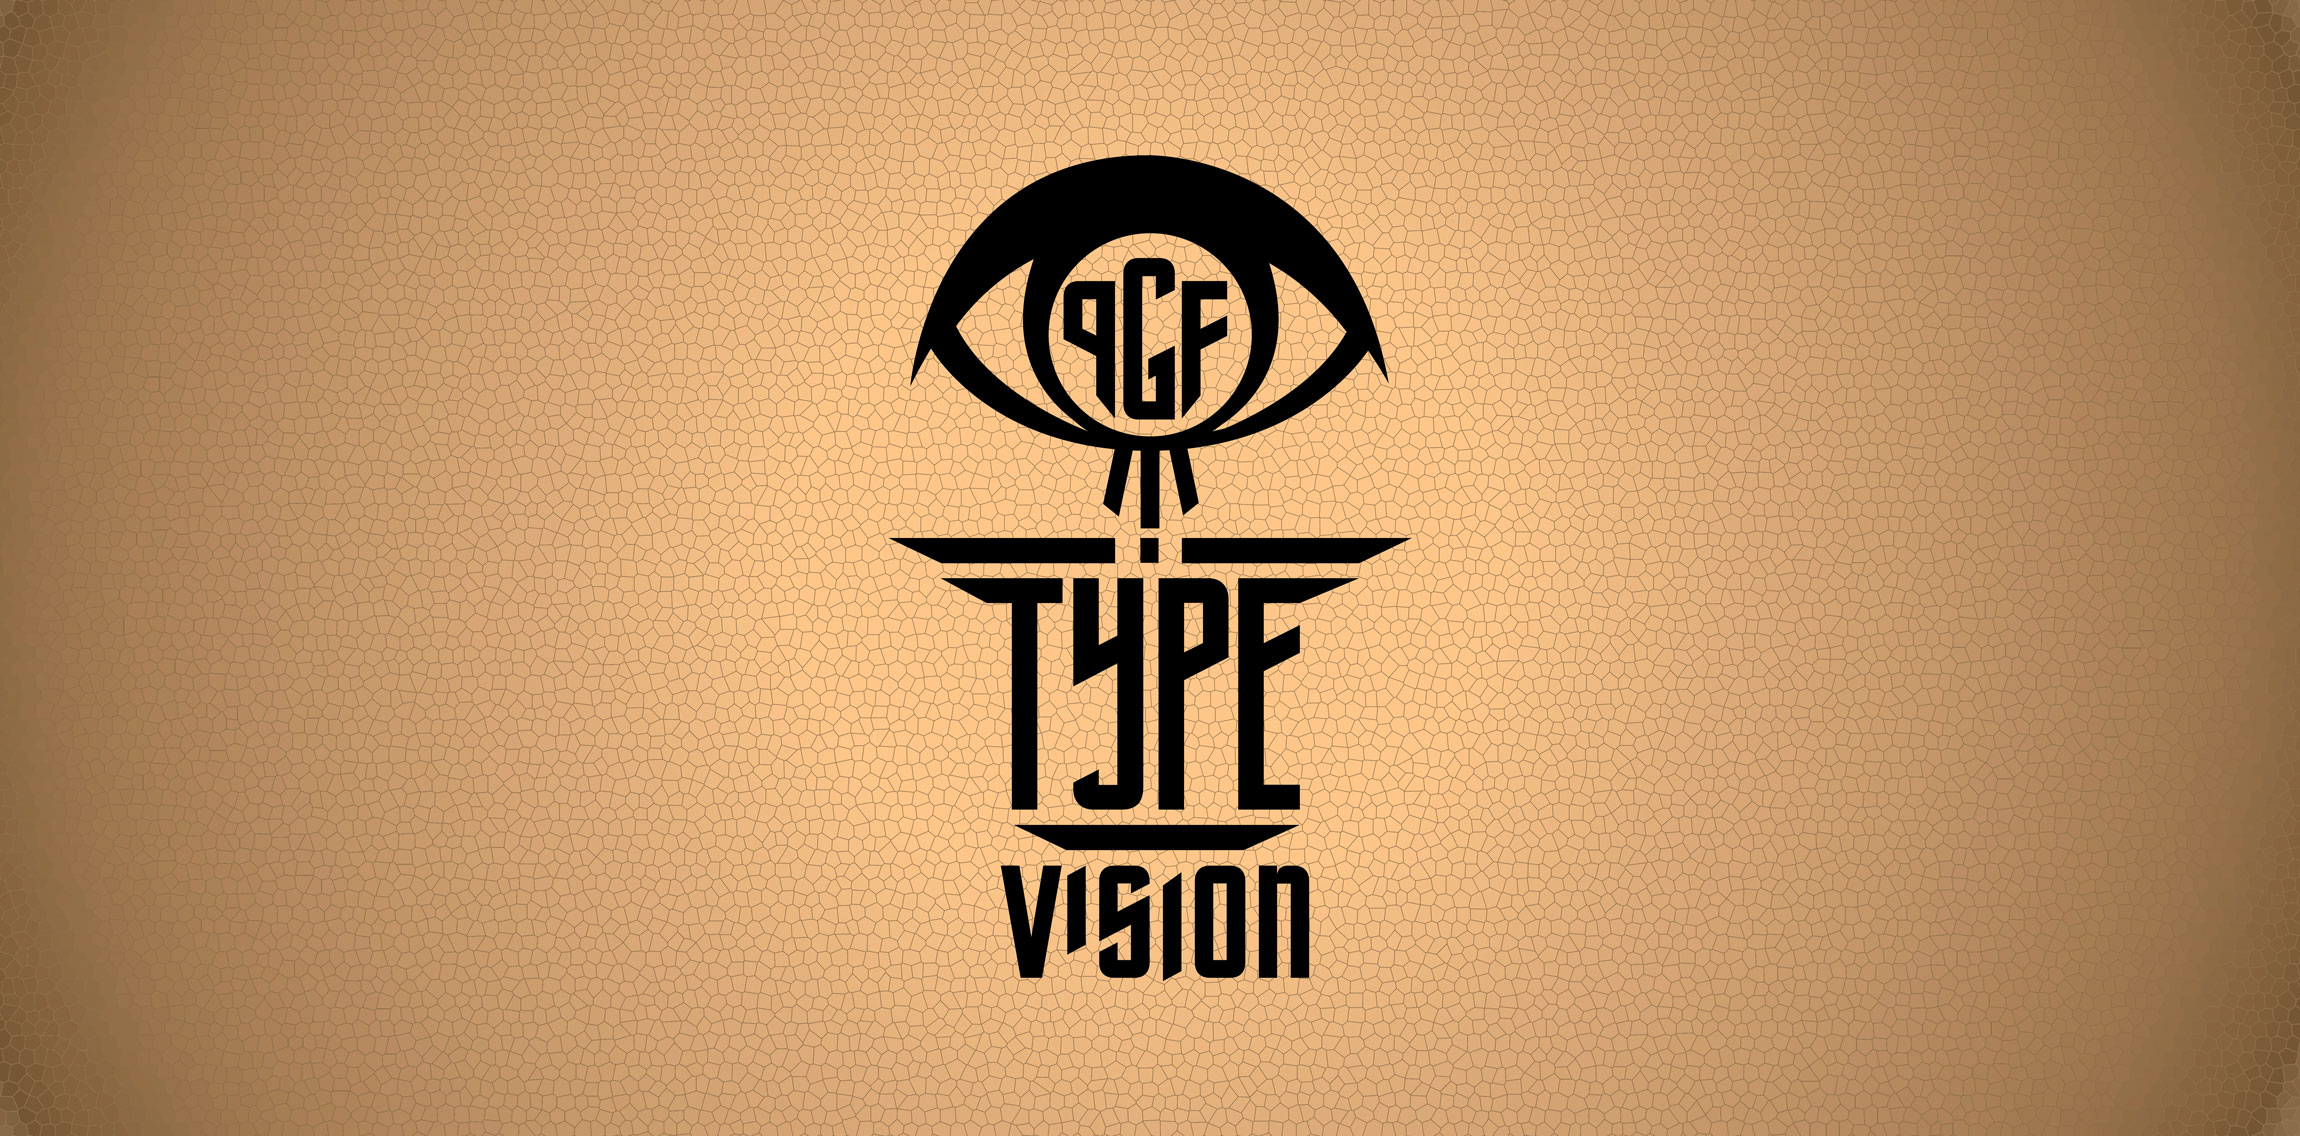 Type Vision